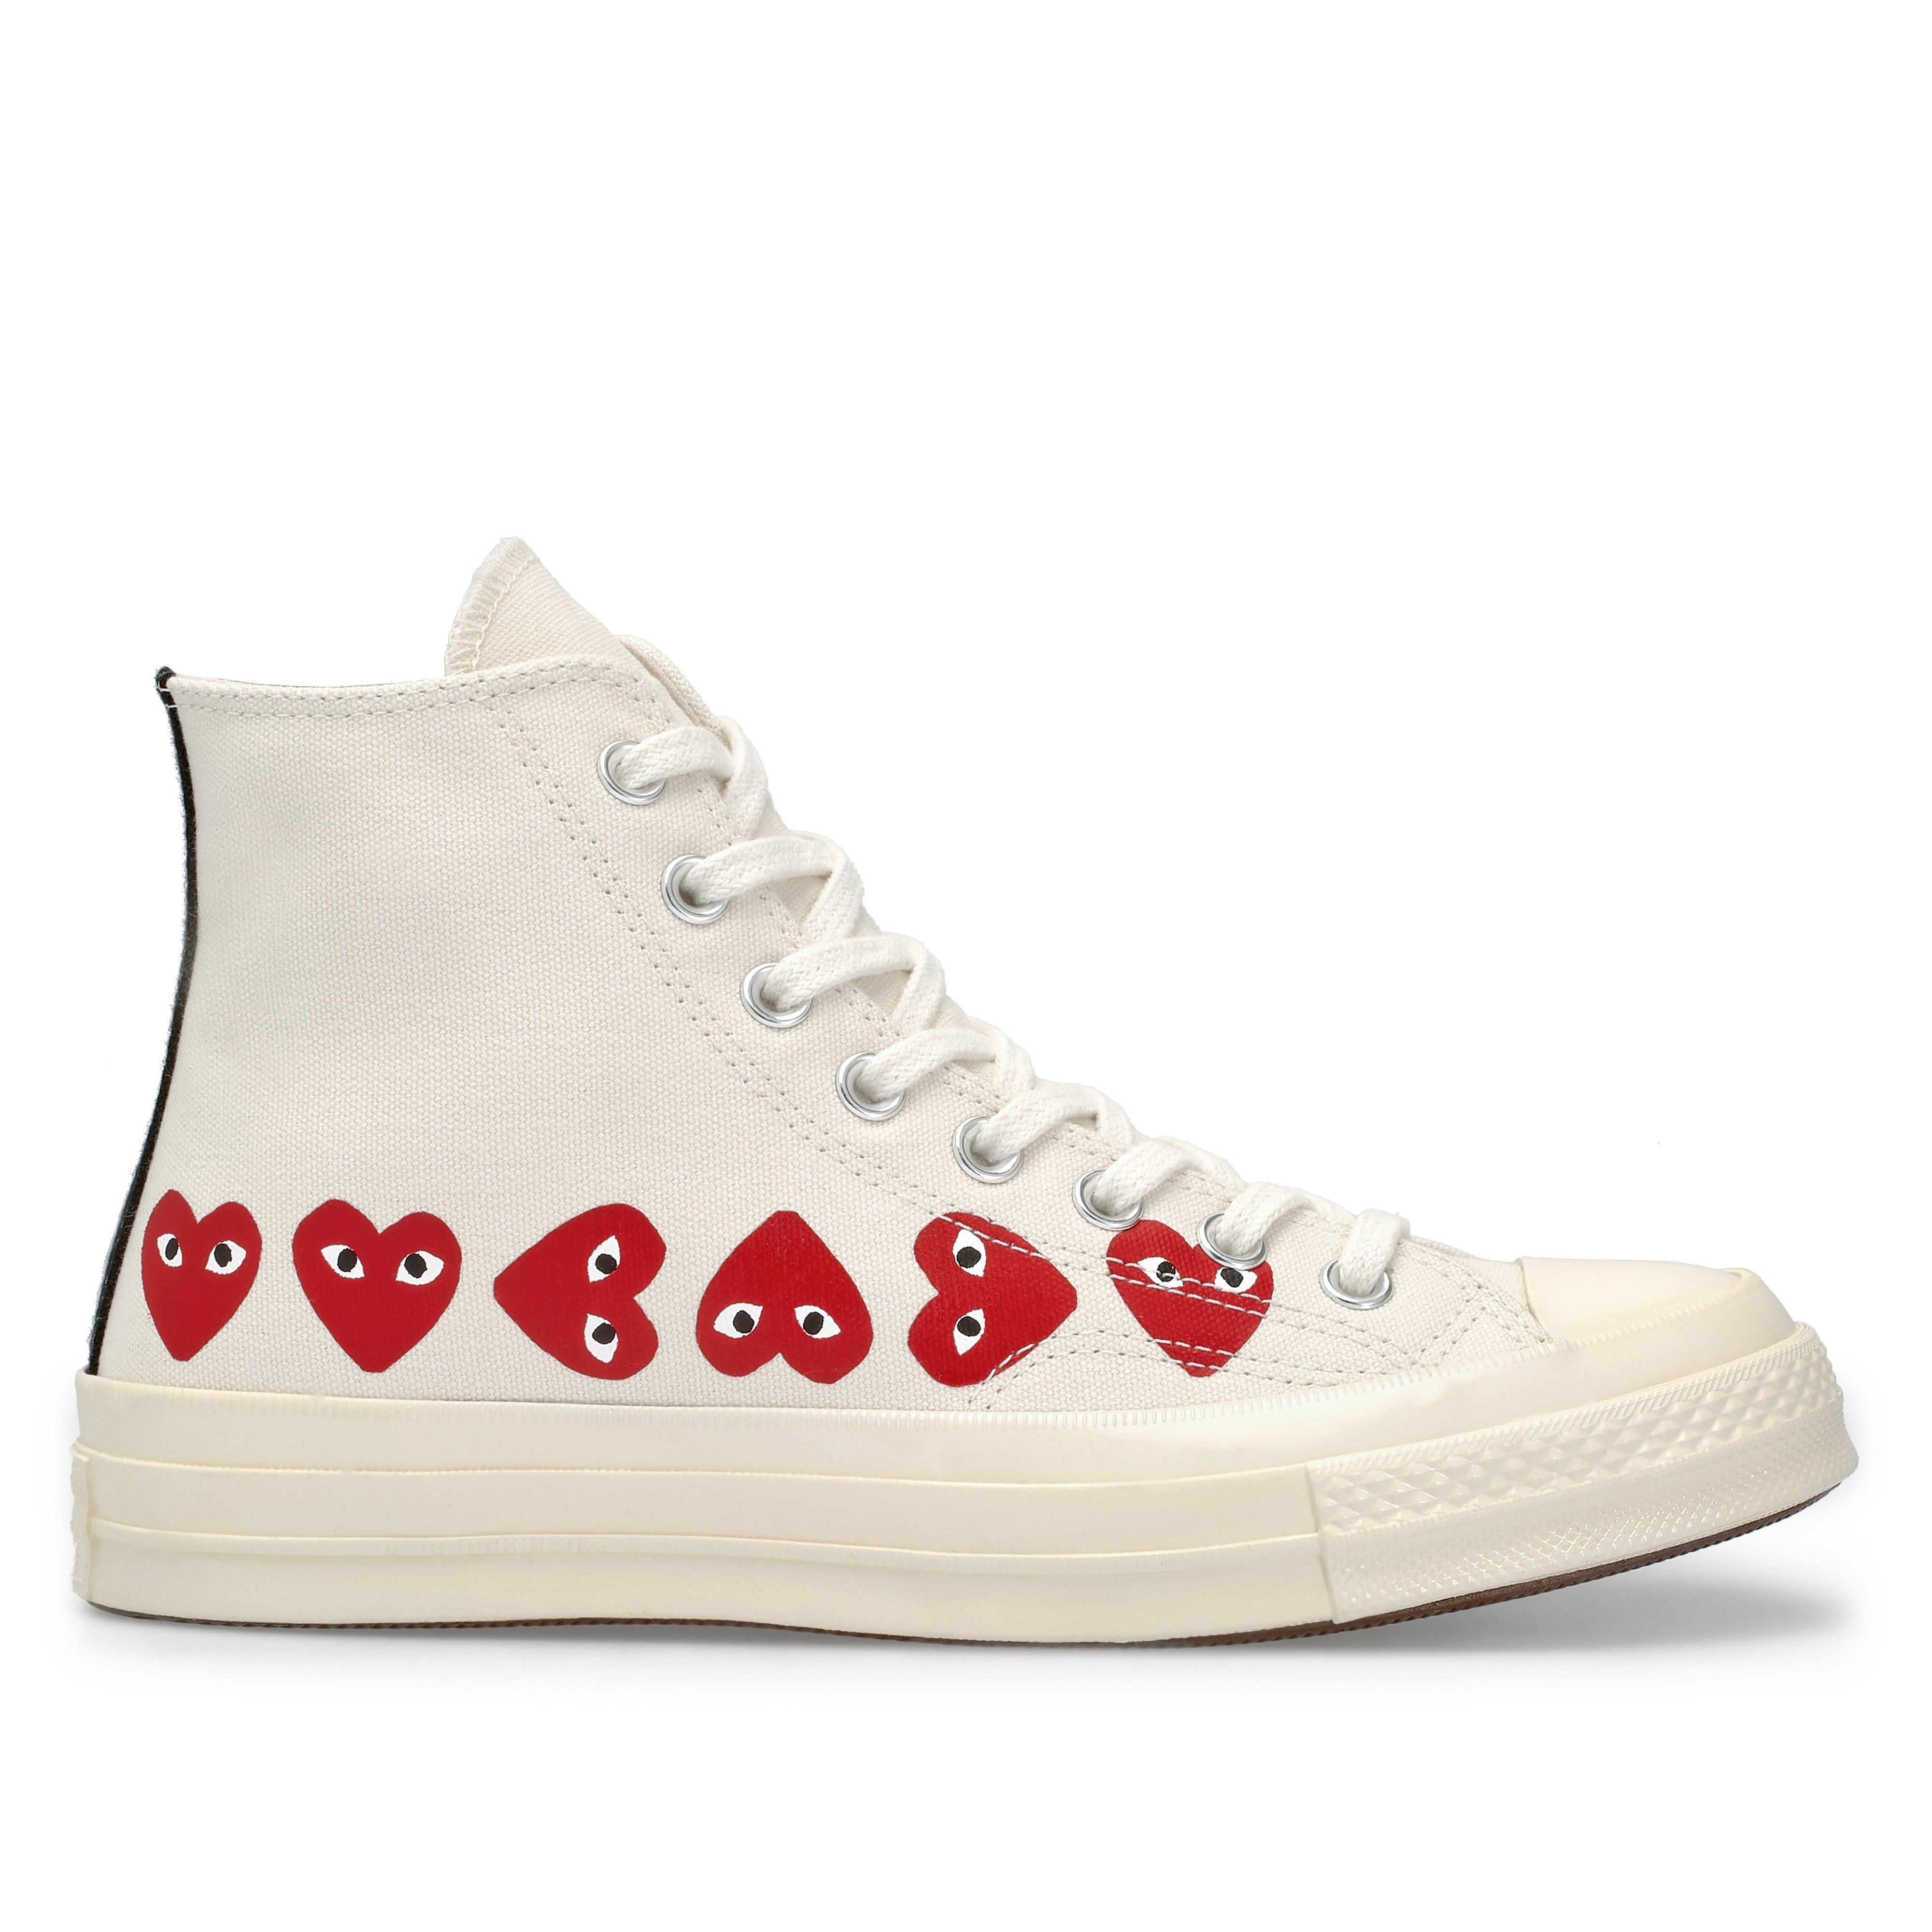 05ba496c7bb3 size 10 please please pleaseeee i know you guys dont like buying me shoes  but i really want these